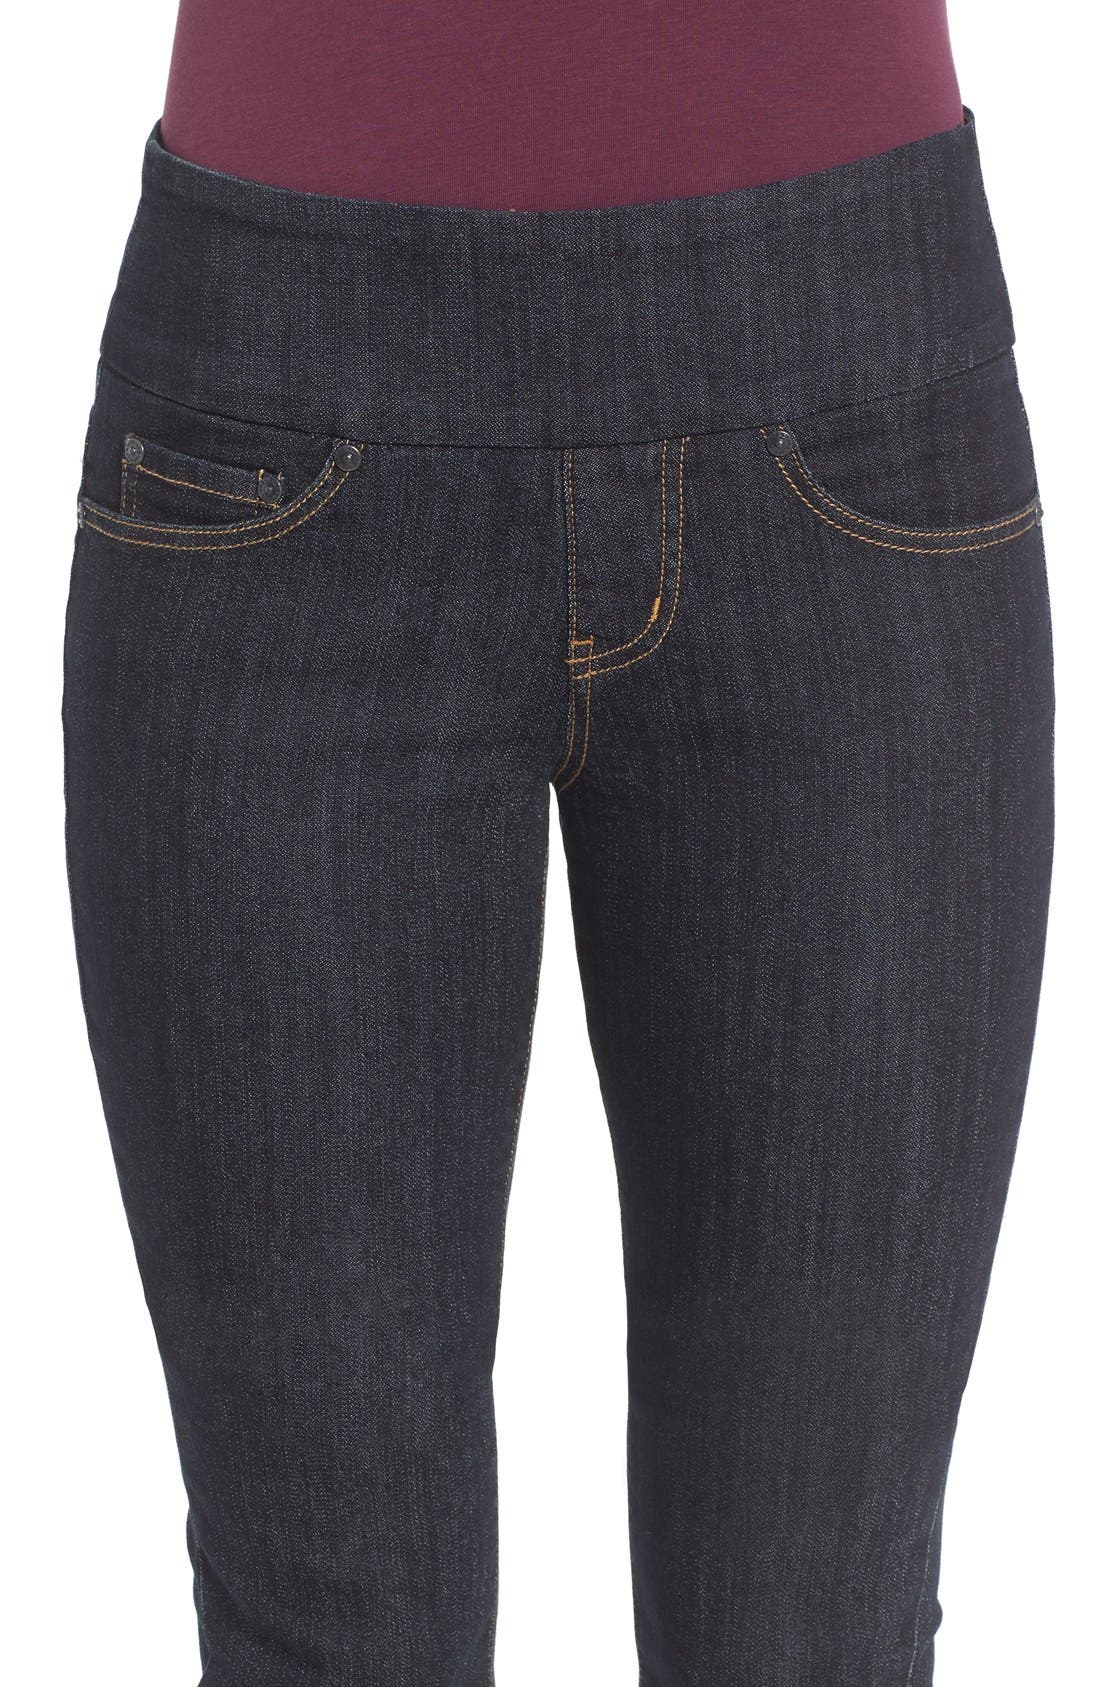 'Peri' Pull-On Stretch Straight Leg Jeans,                             Alternate thumbnail 4, color,                             Late Night Wash